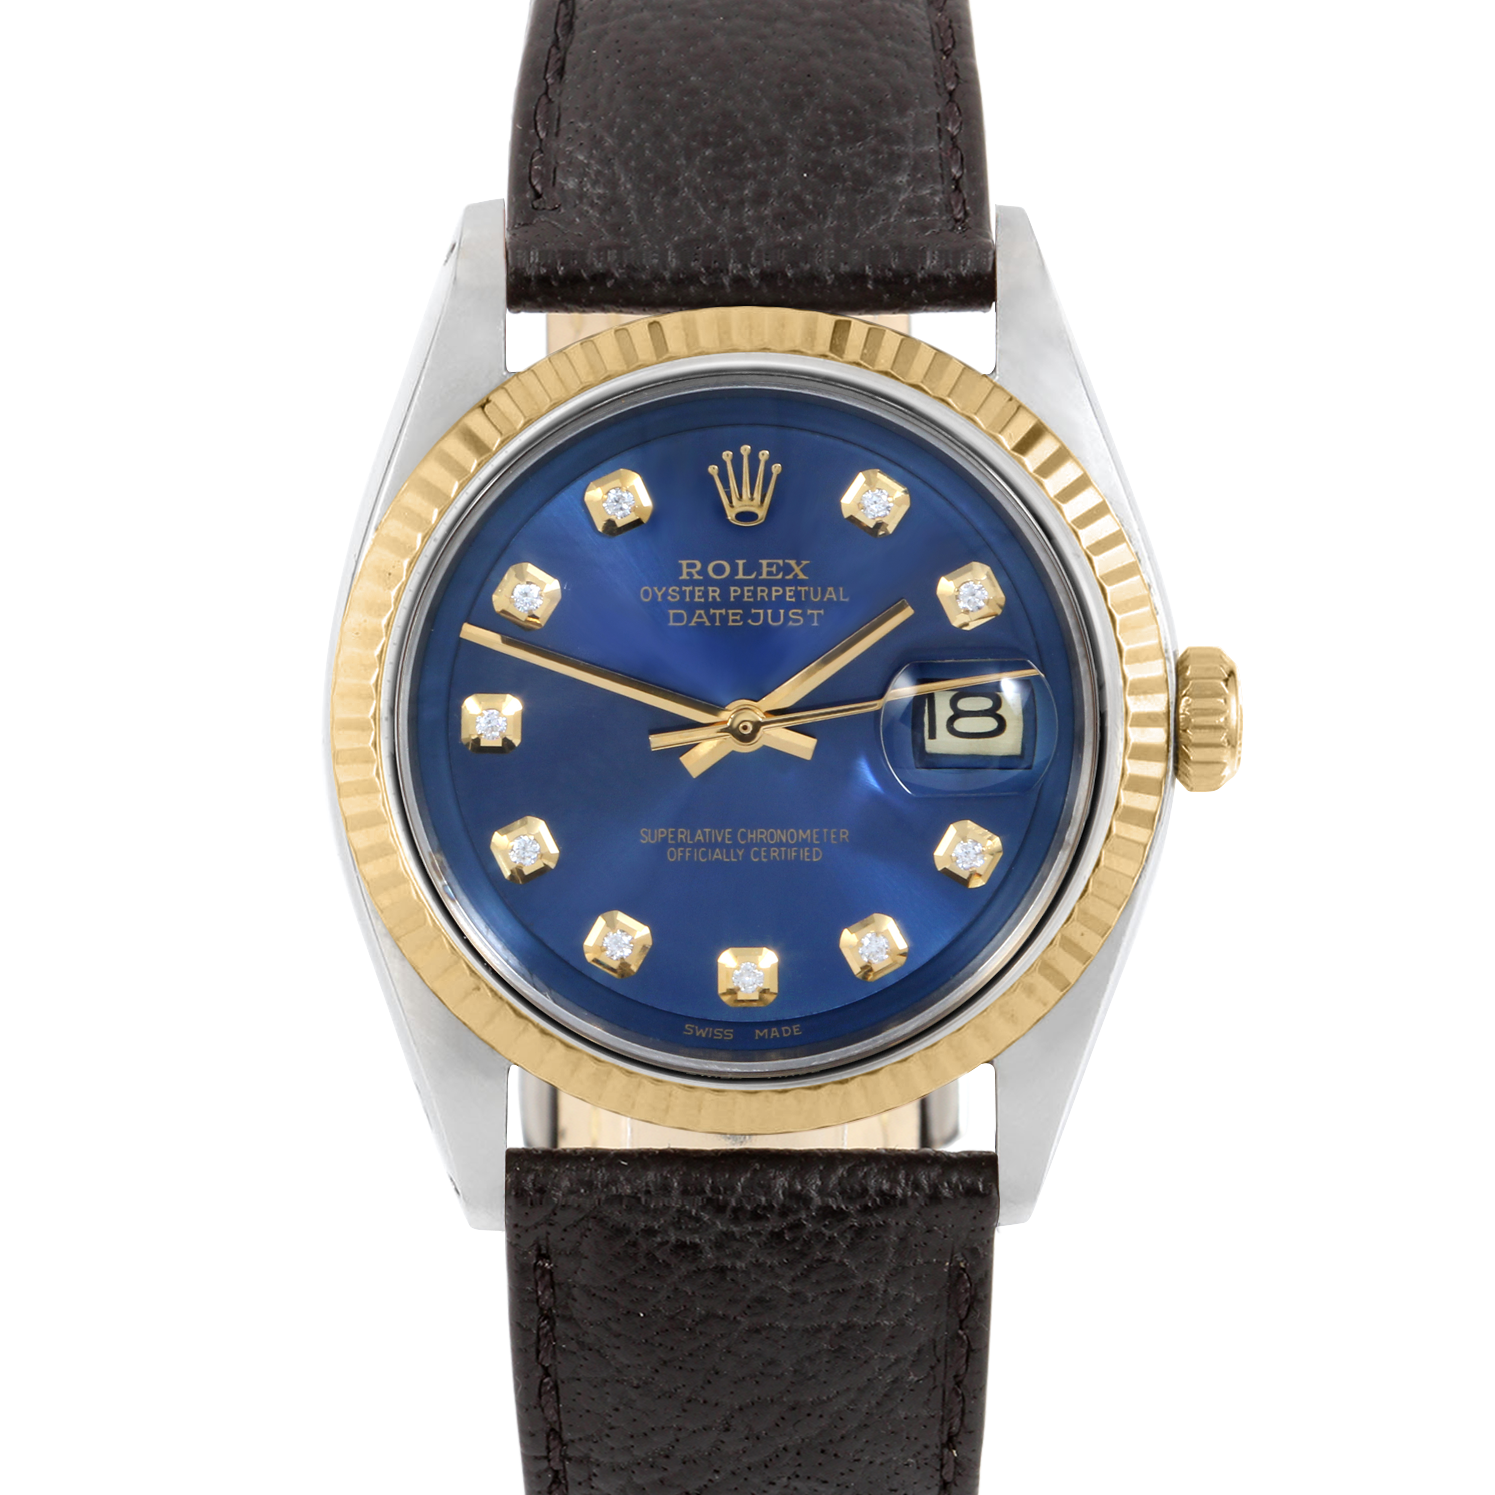 Rolex Datejust 36 1601 Yellow Gold & Stainless Steel, Custom Blue Diamond, Fluted Bezel On A Black Buffalo Leather Strap - Men's Pre-Owned Watch